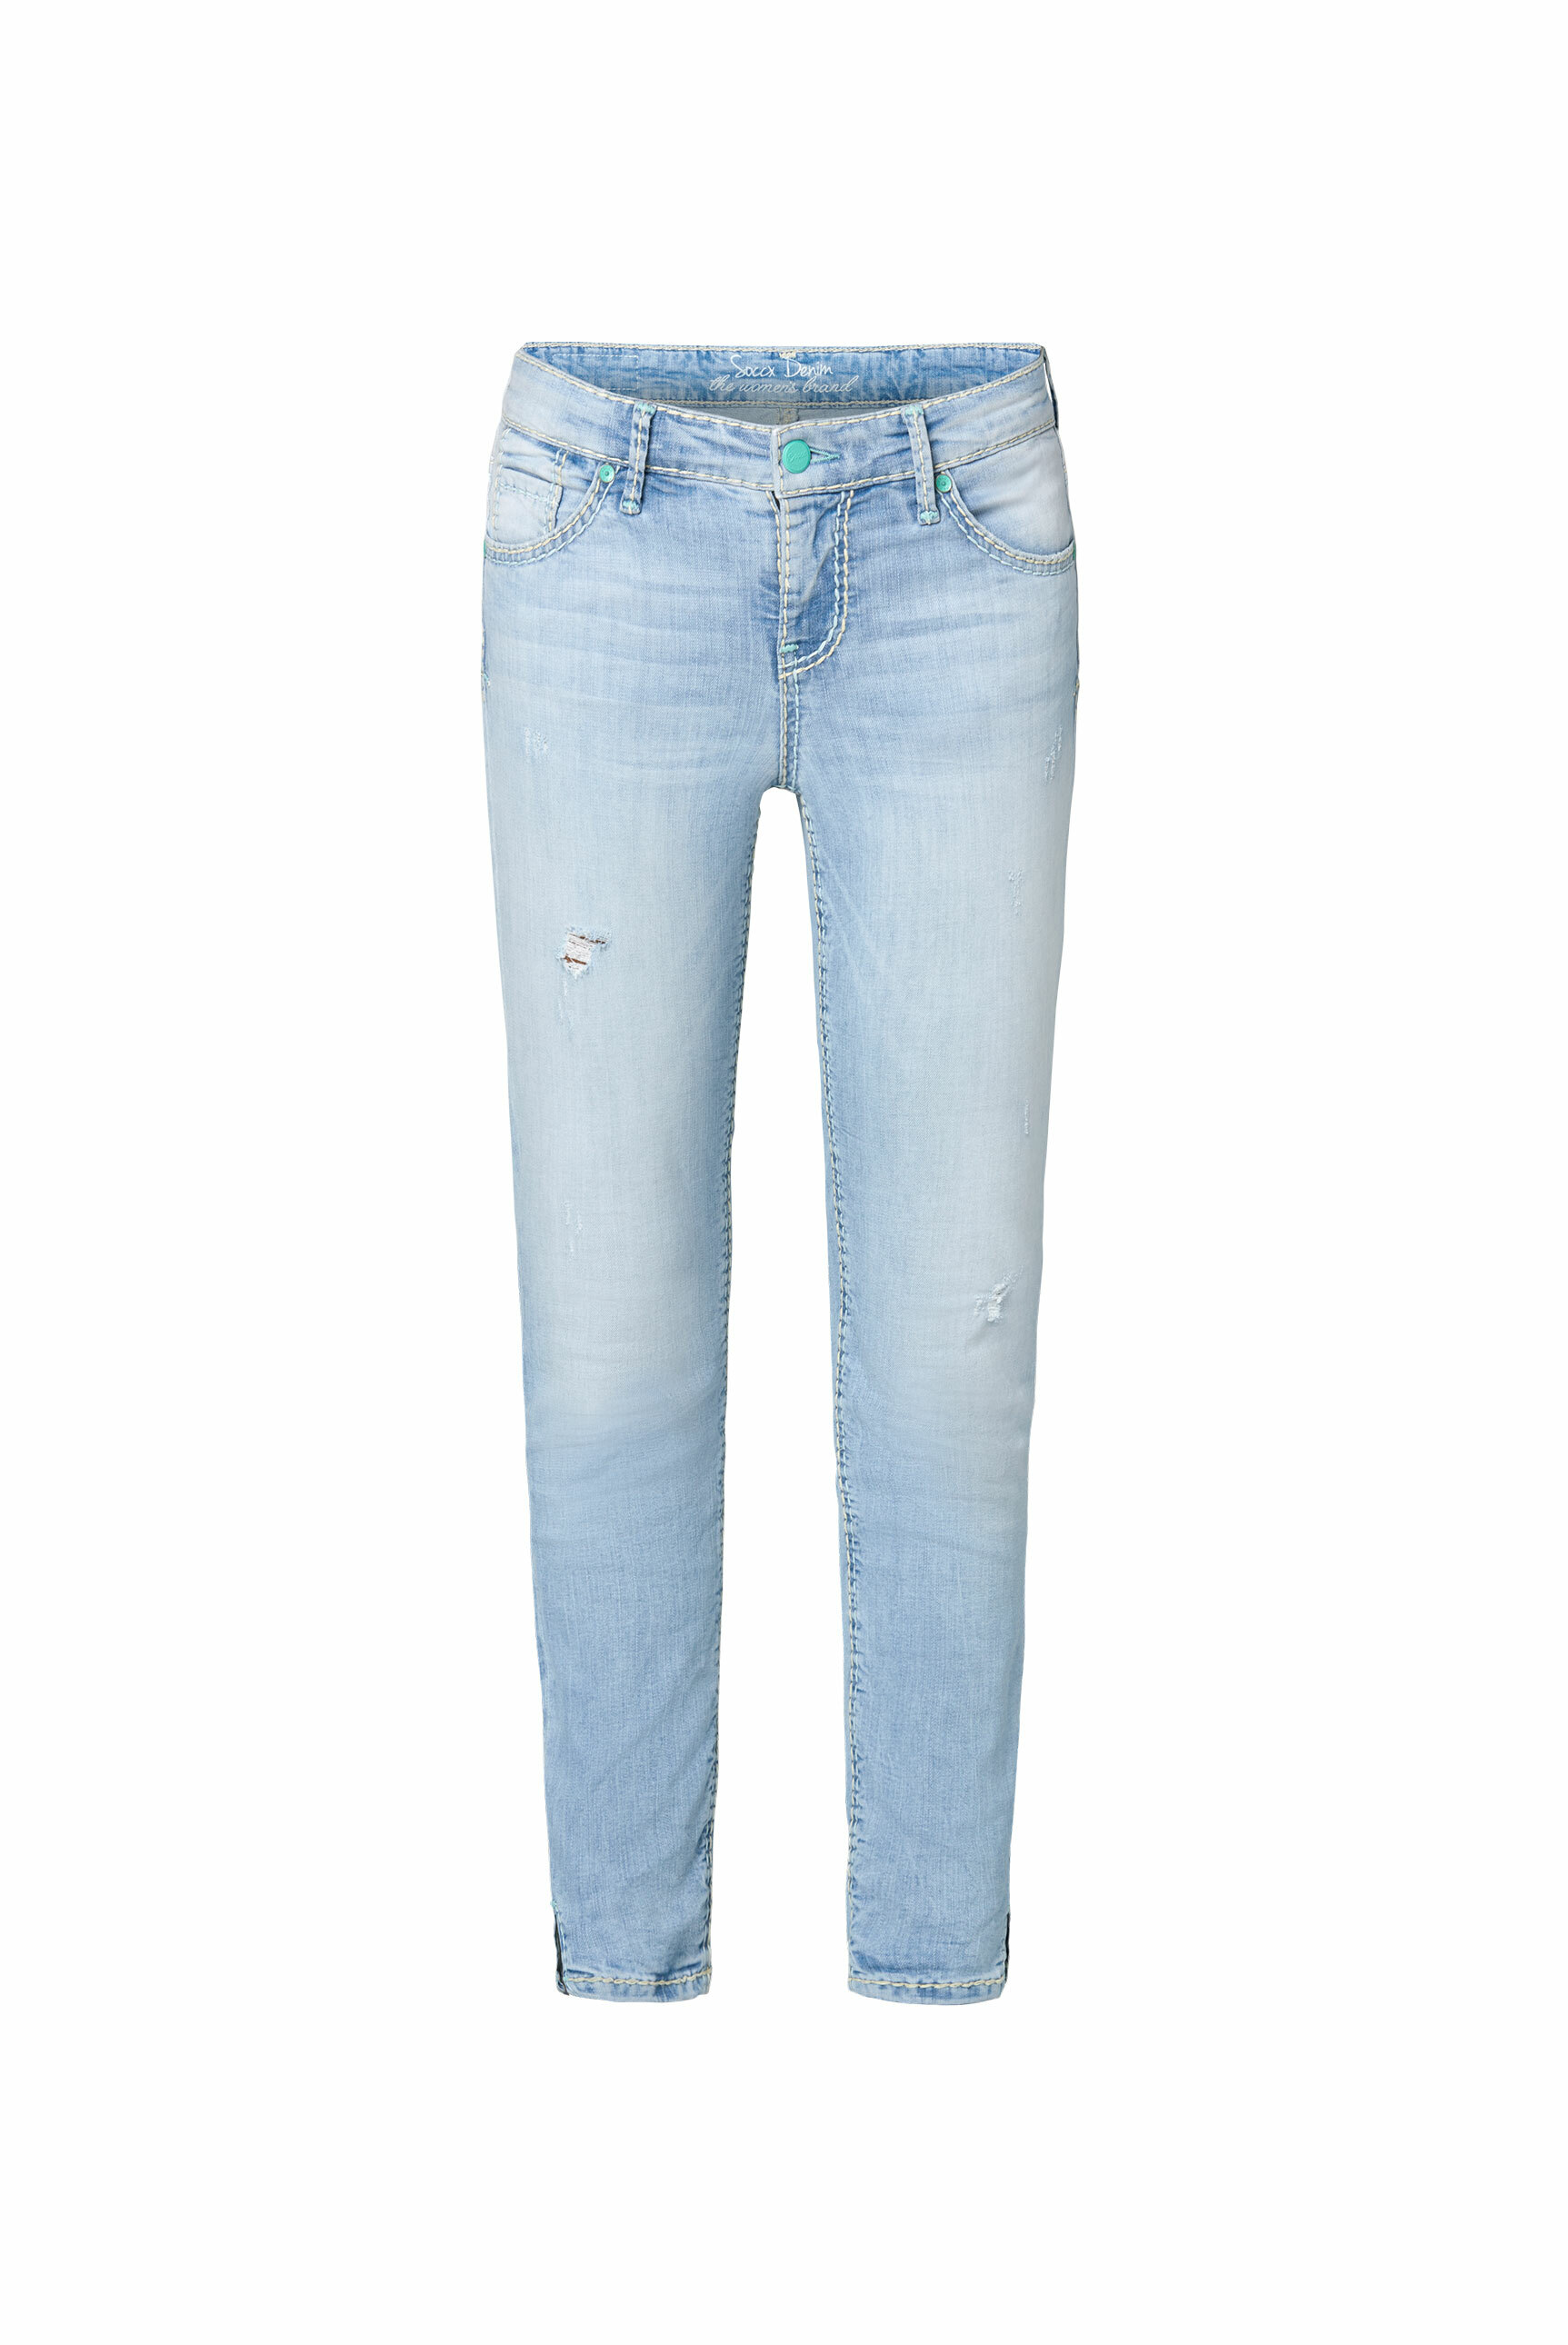 Jeans MI:RA Salt Washed mit Destroy-Effekten